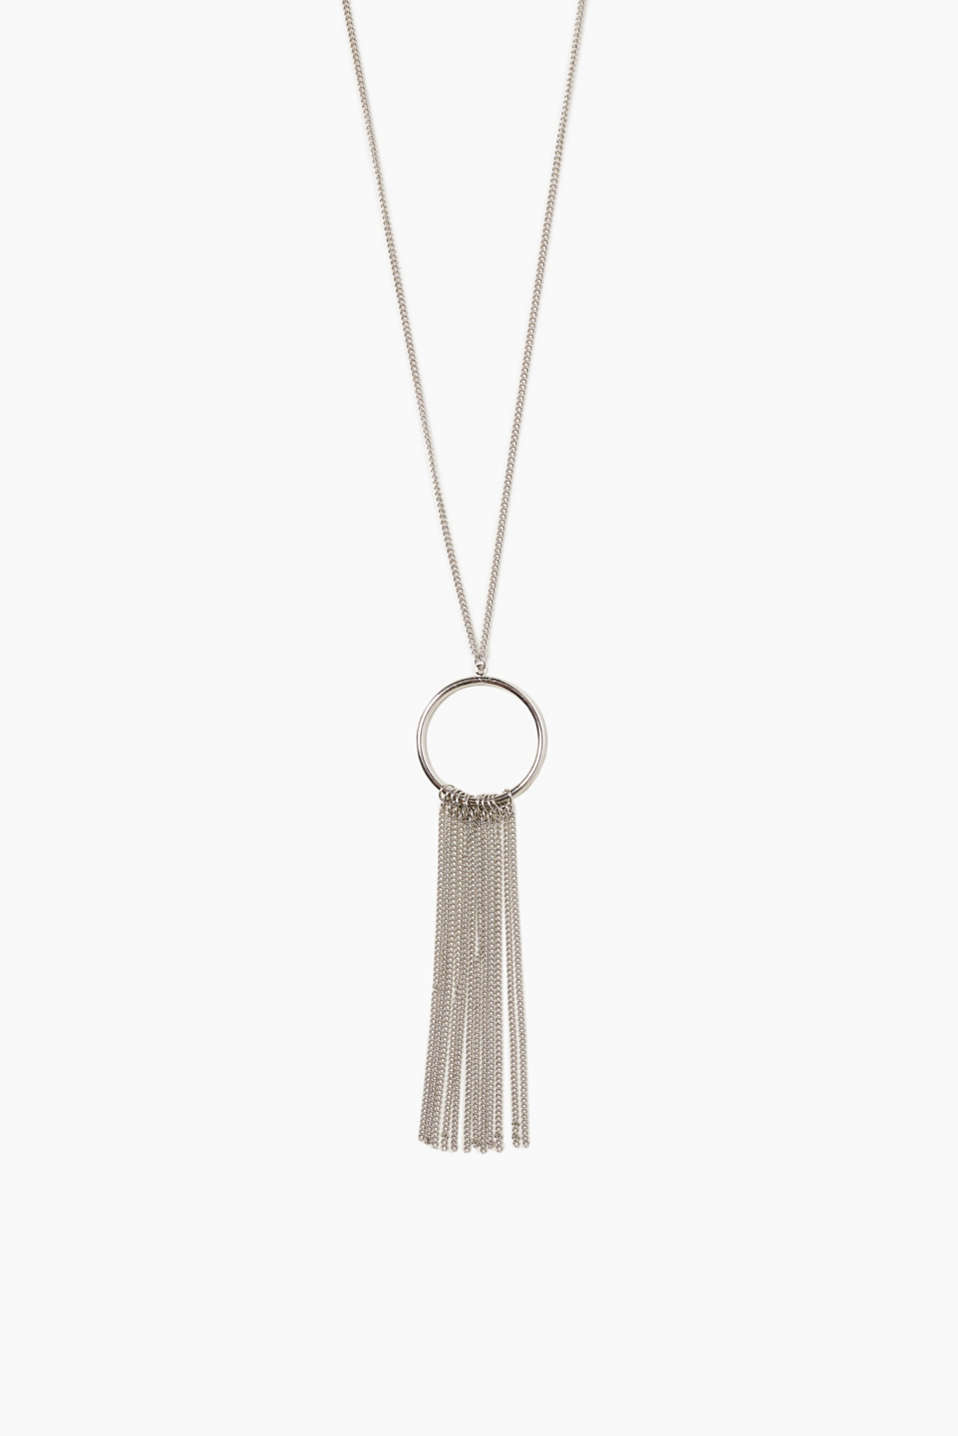 Esprit - Metal necklace, ring pendants and fringing